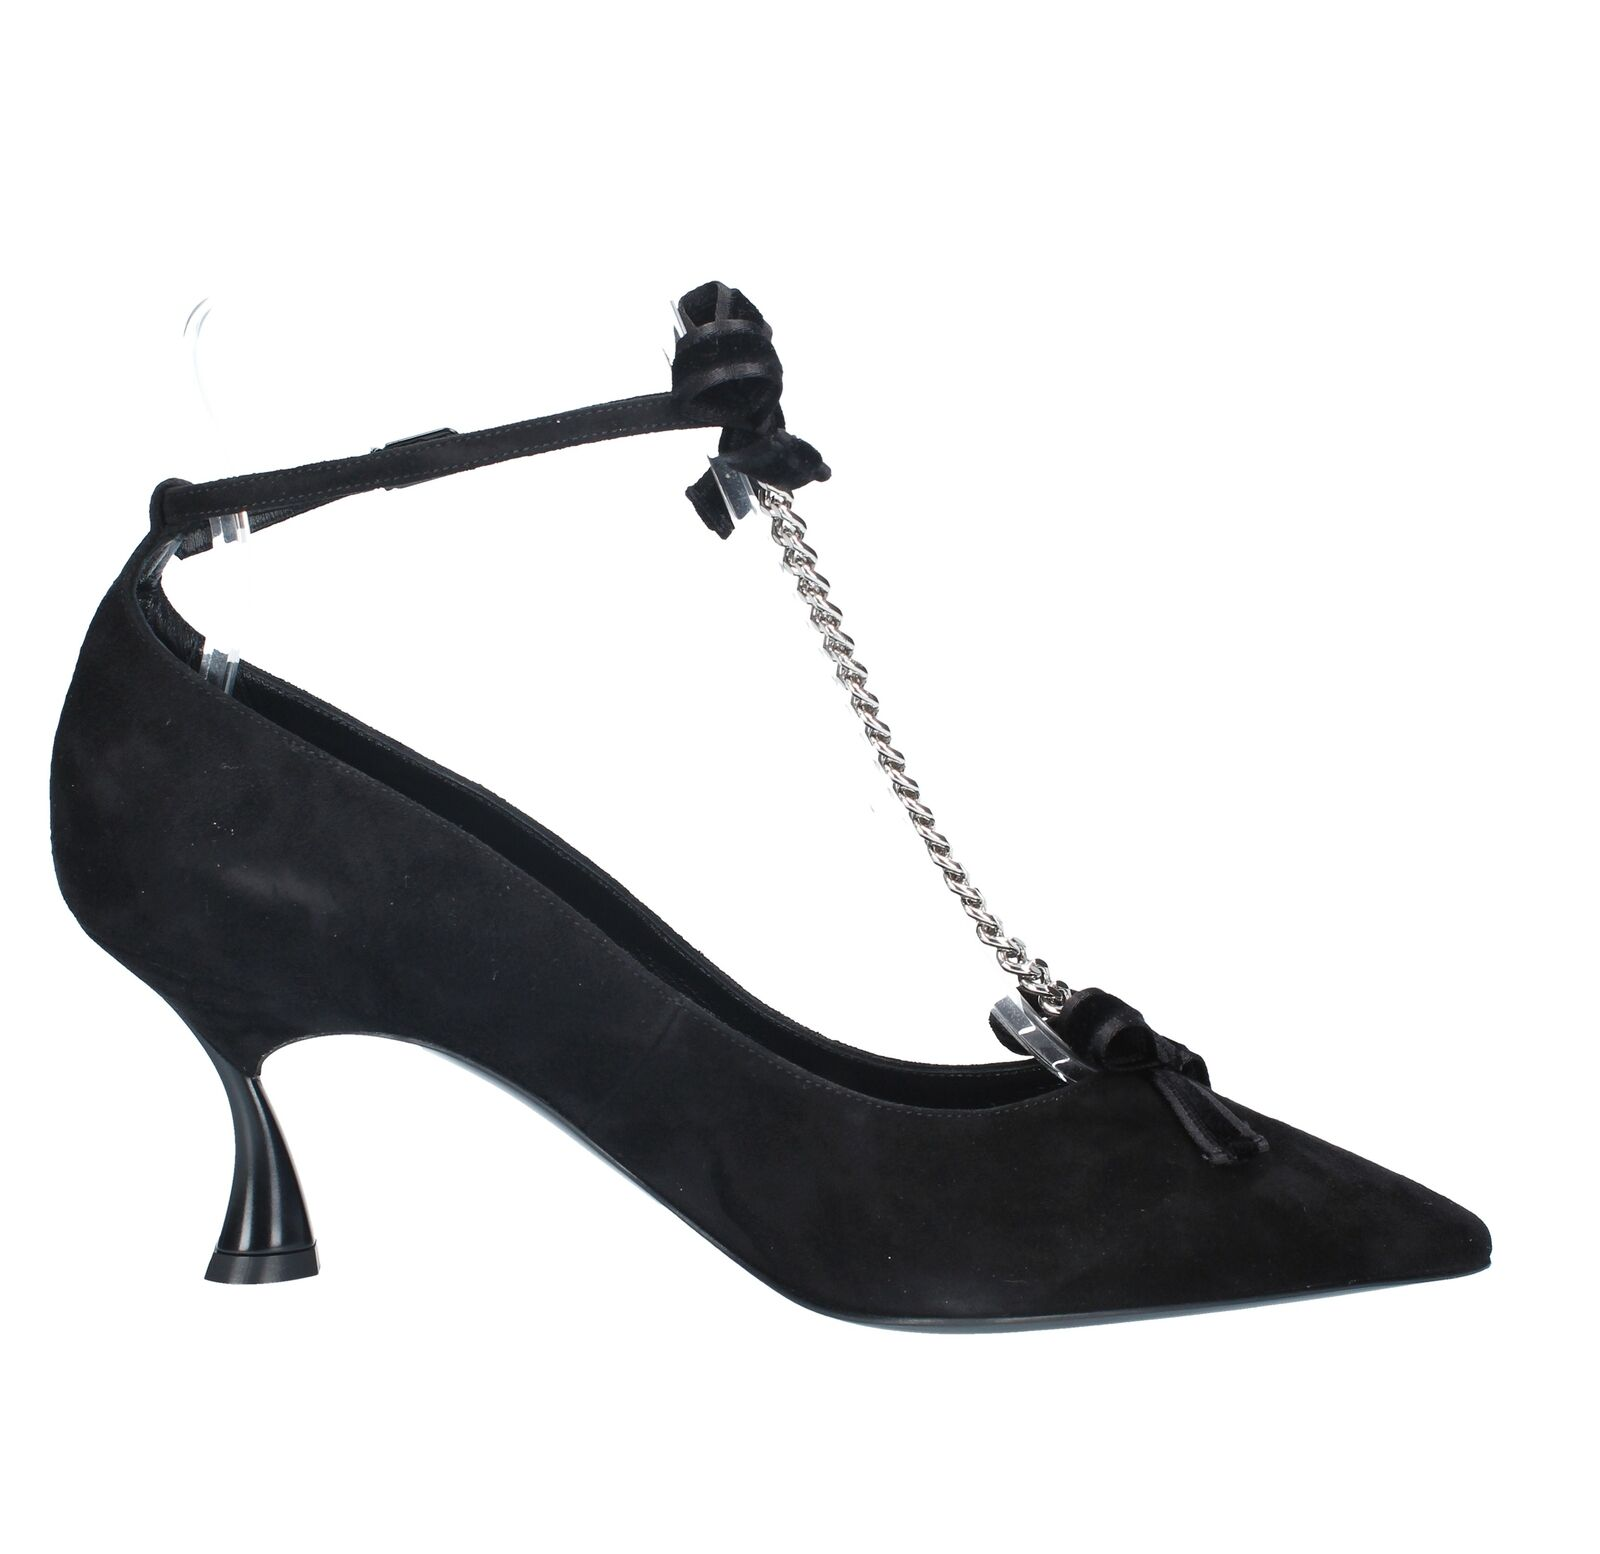 AF6_CASA Scarpe Decollete Decollete Decollete CASADEI donna Nero | Colore Brillantezza